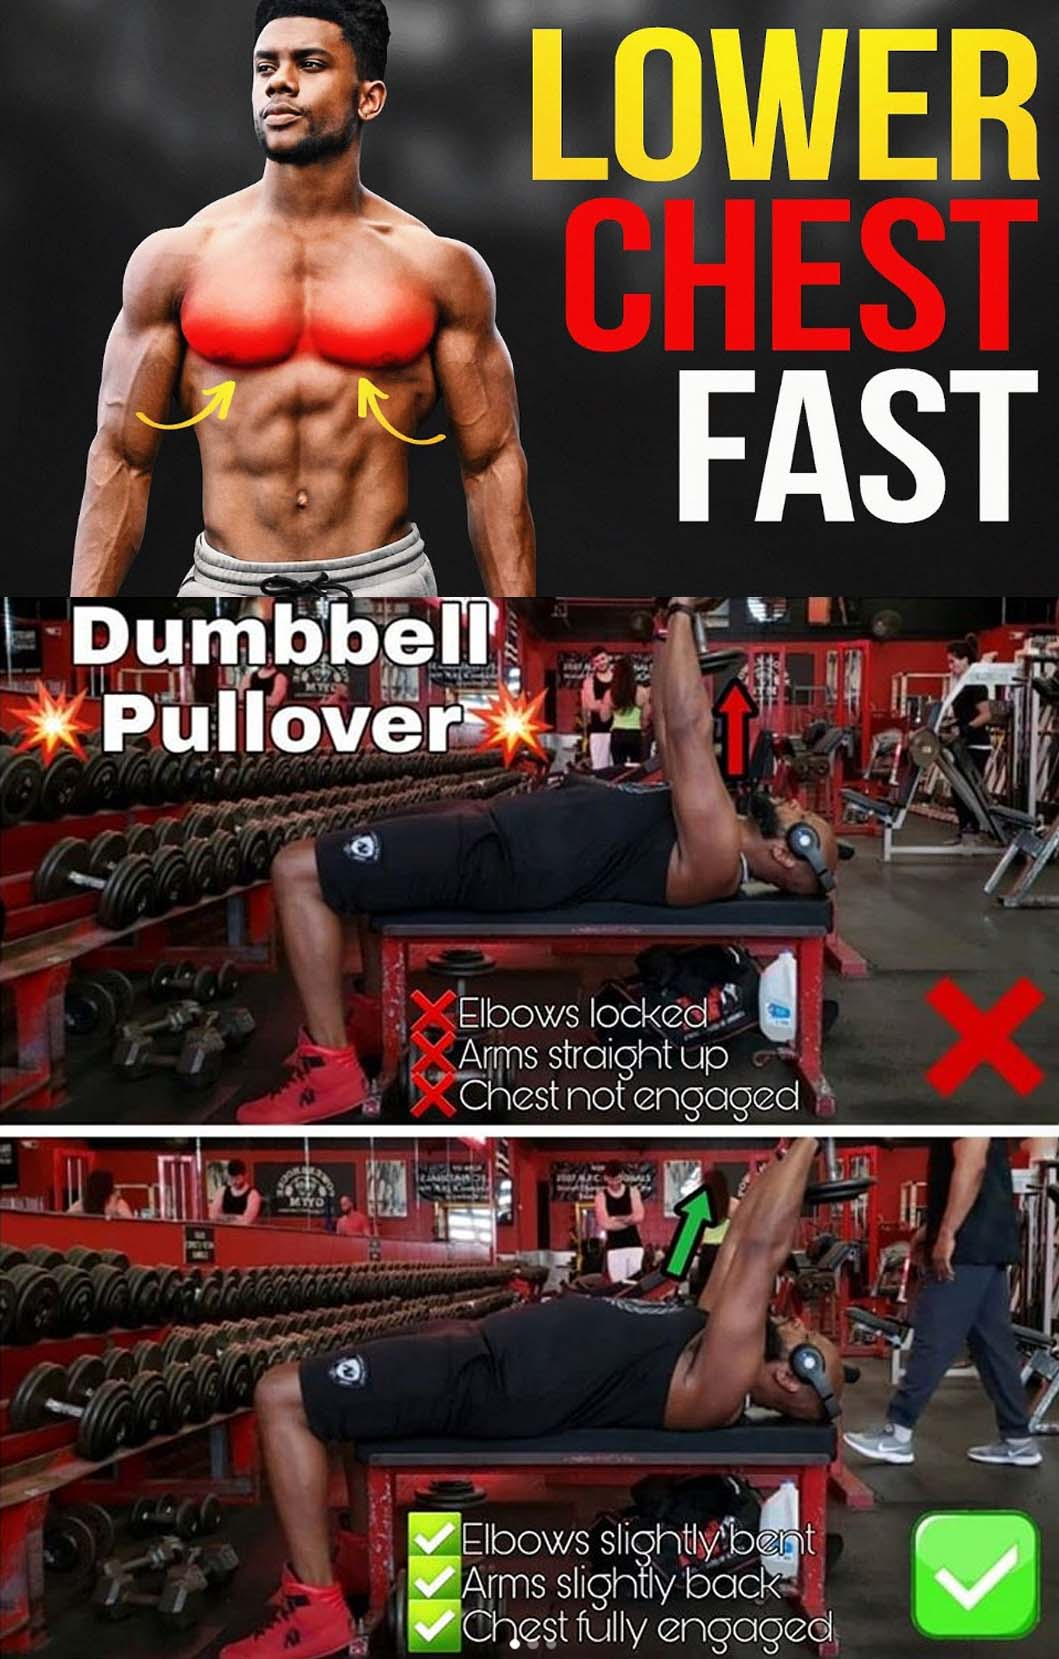 Chest Fast Exercises